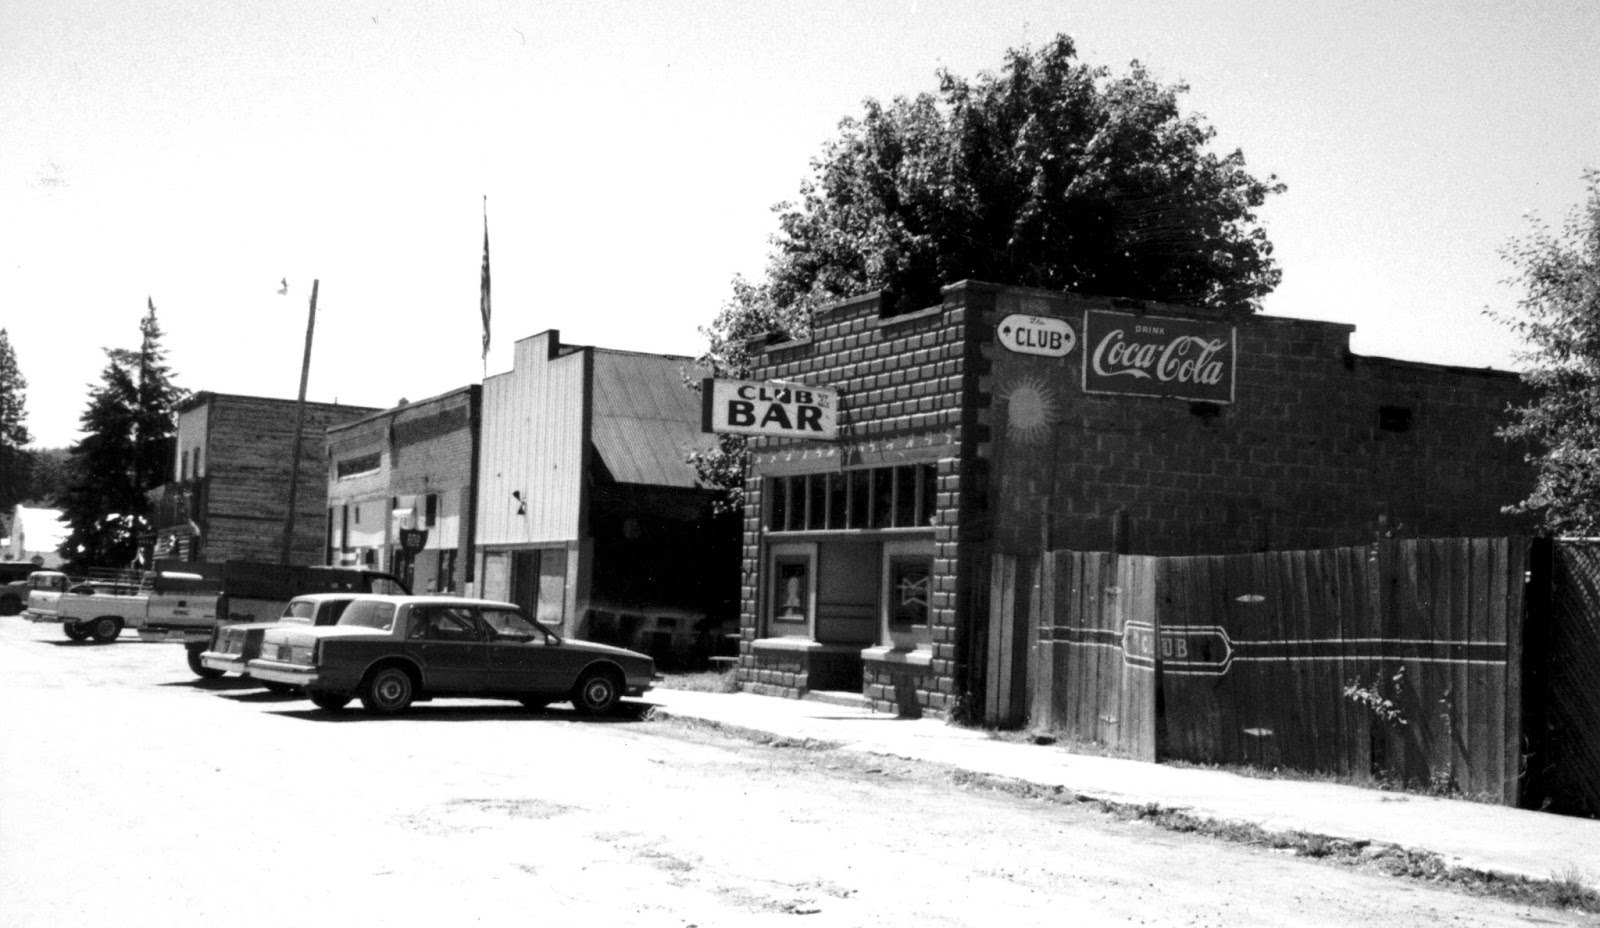 Bar Street in Troy, Montana, 1970s (from the Noirsville blog).